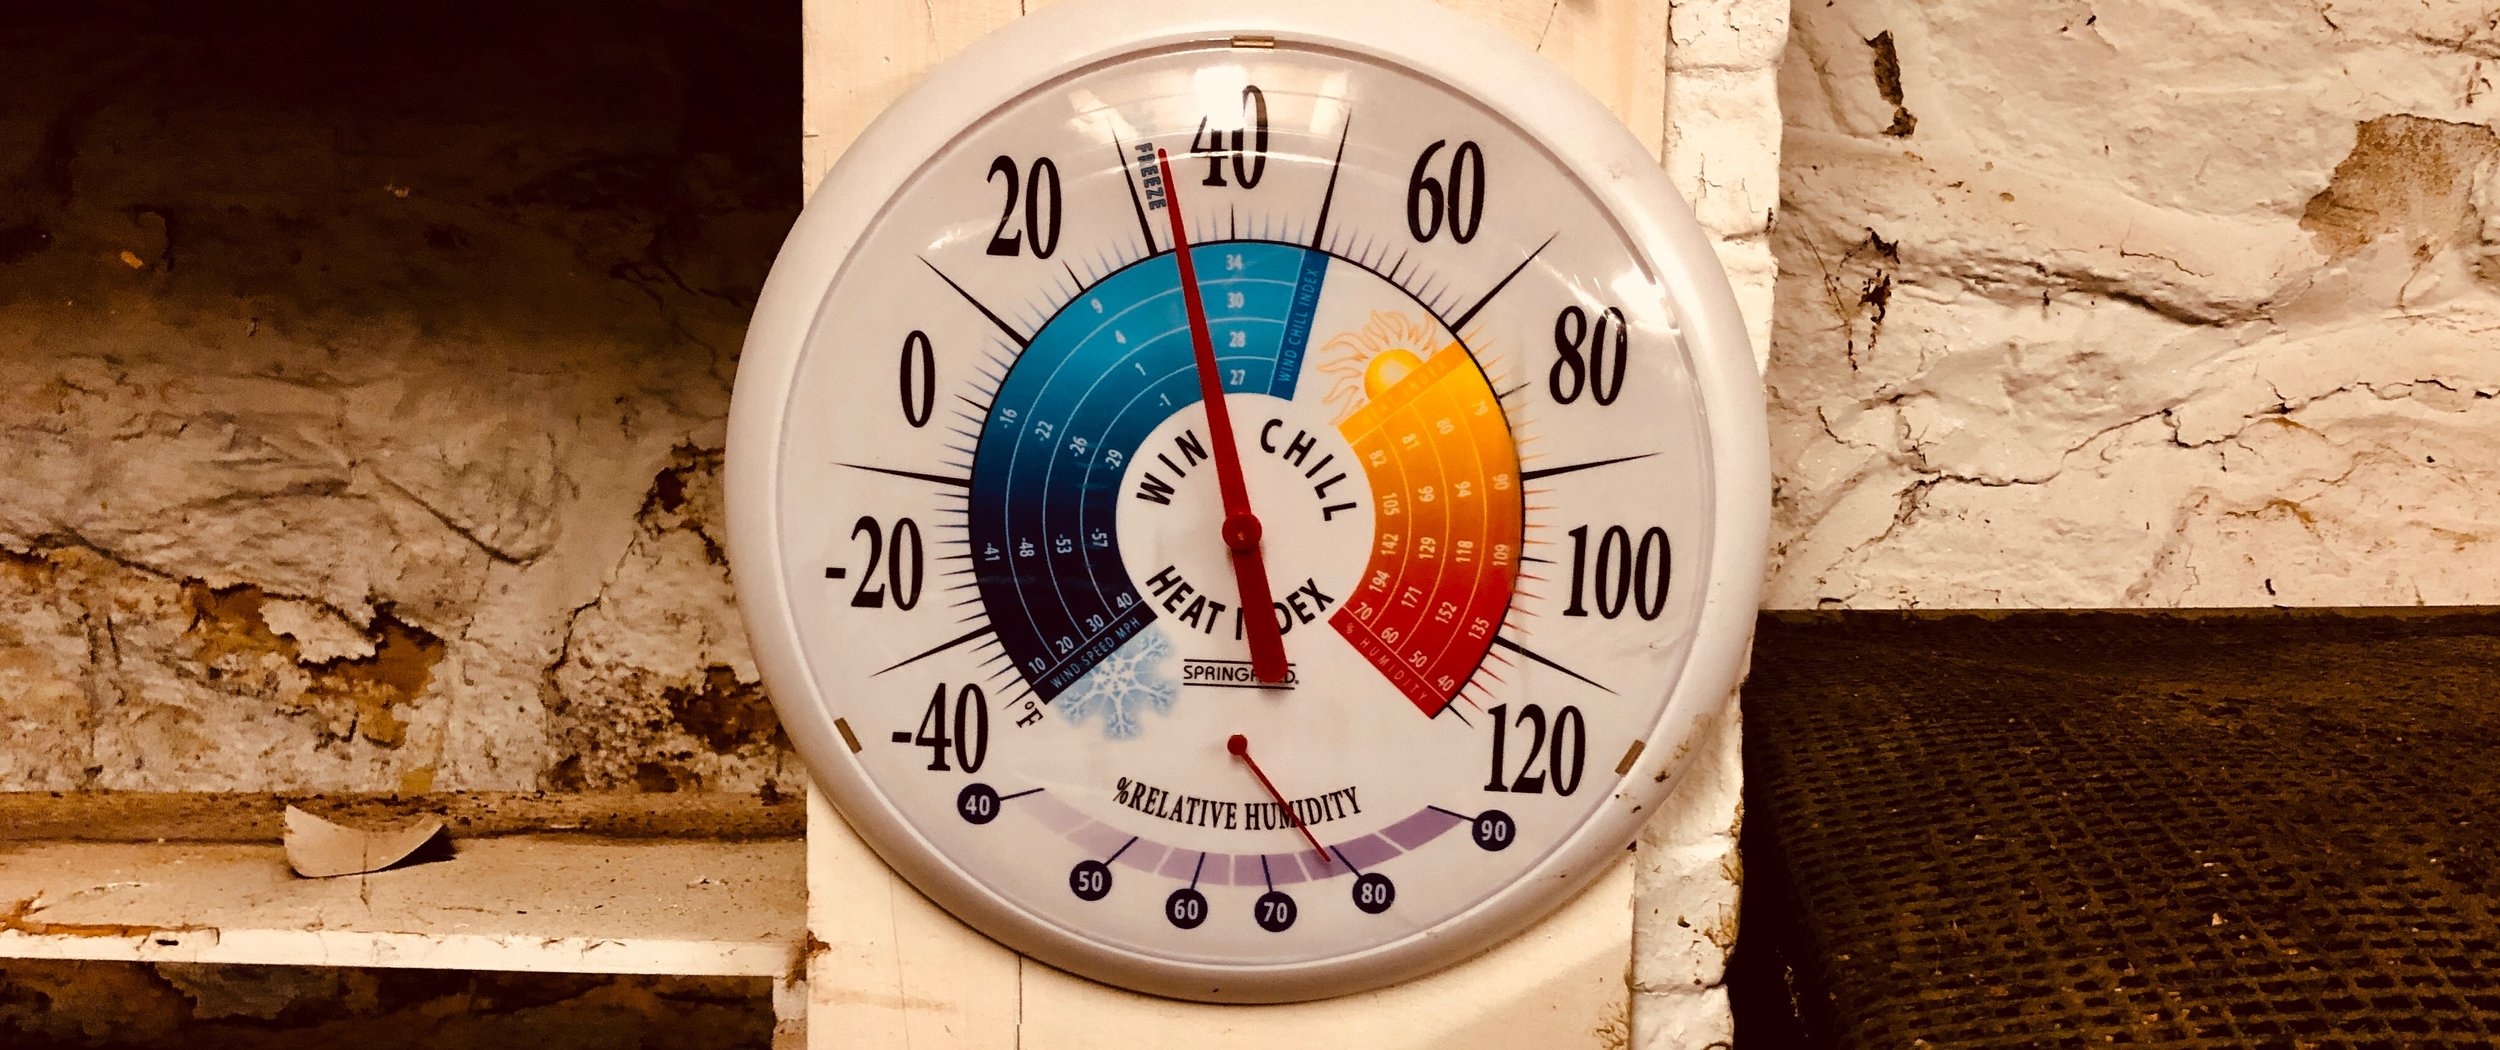 Temperature and humidity is important. This picture was taken on one of the single-digit mornings. The root cellar was at 34 degrees with a relative humidity of 80%. That's pretty darn good!